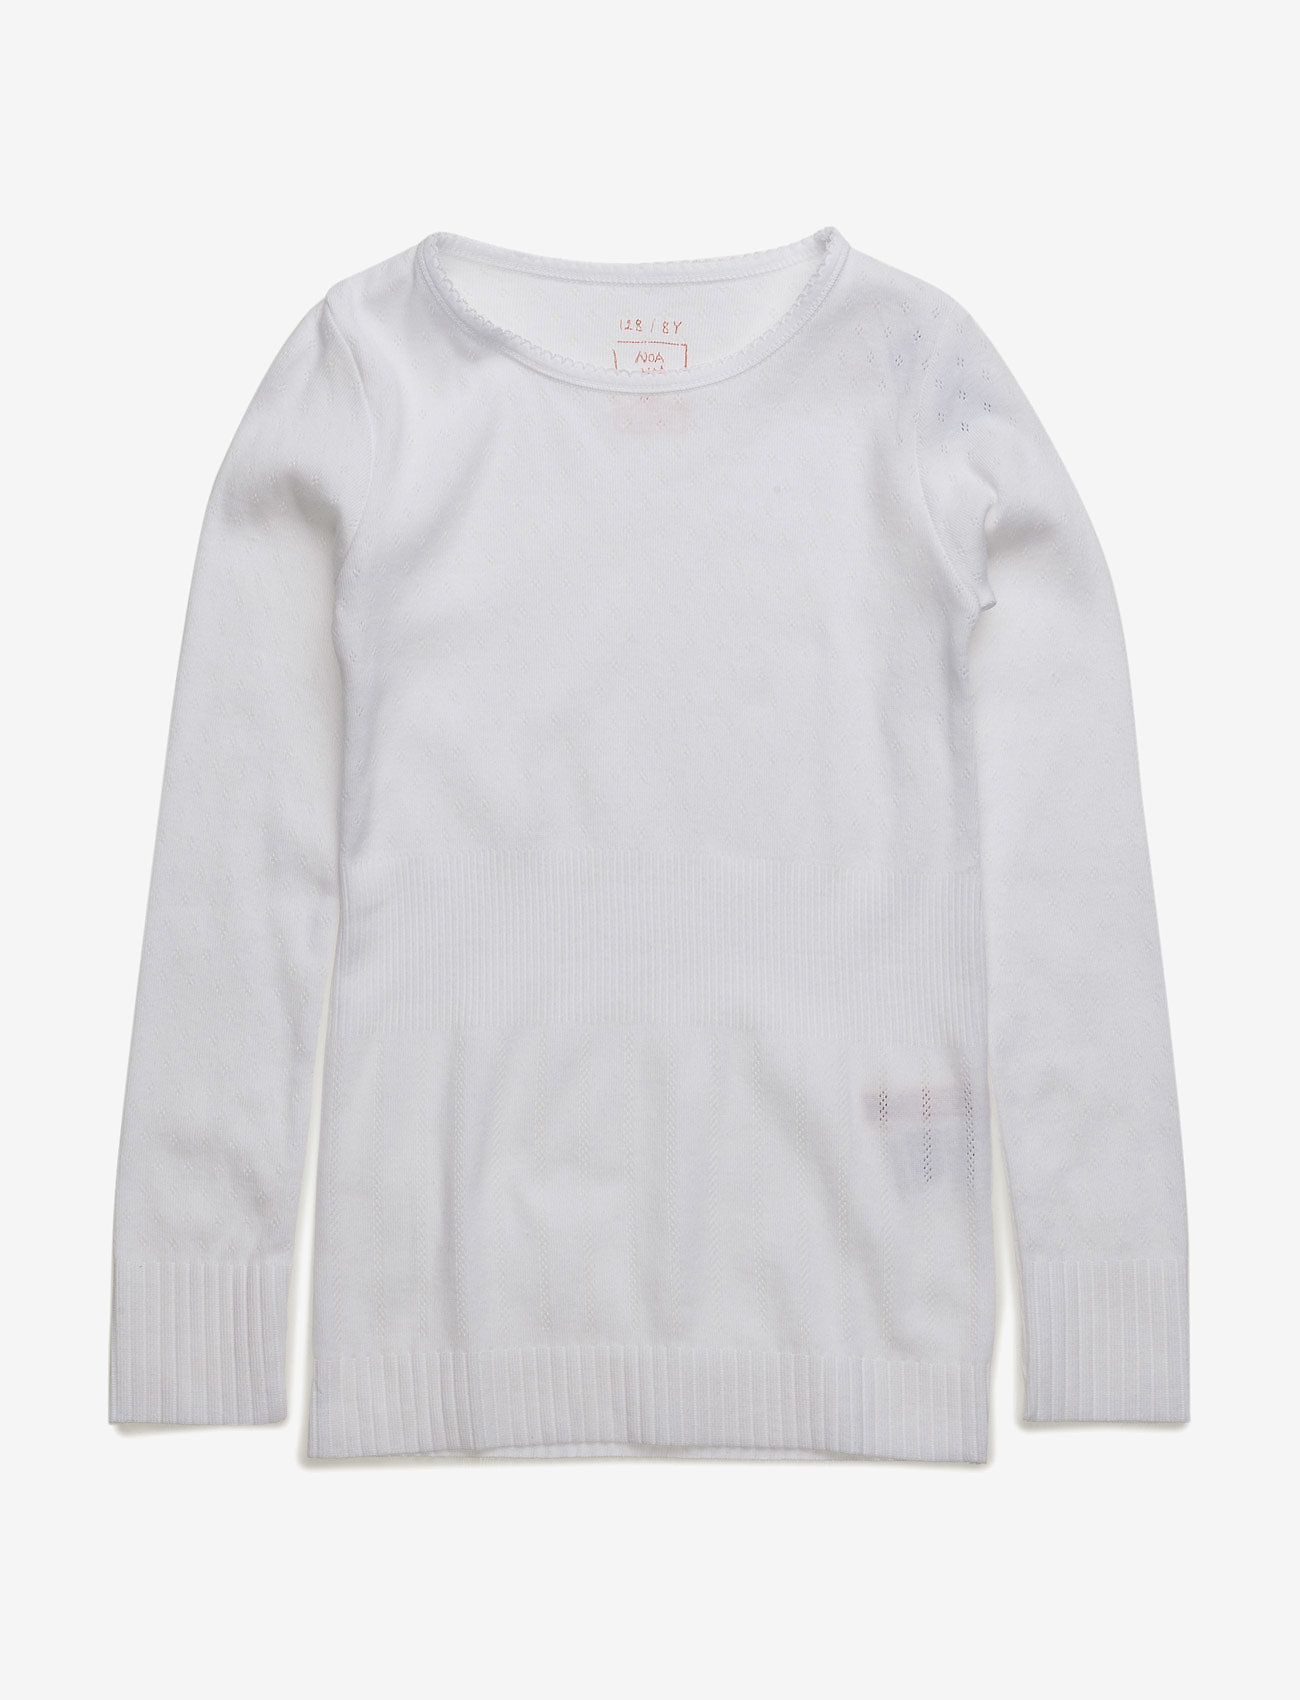 Noa Noa Miniature - T-shirt - long-sleeved t-shirts - white - 1